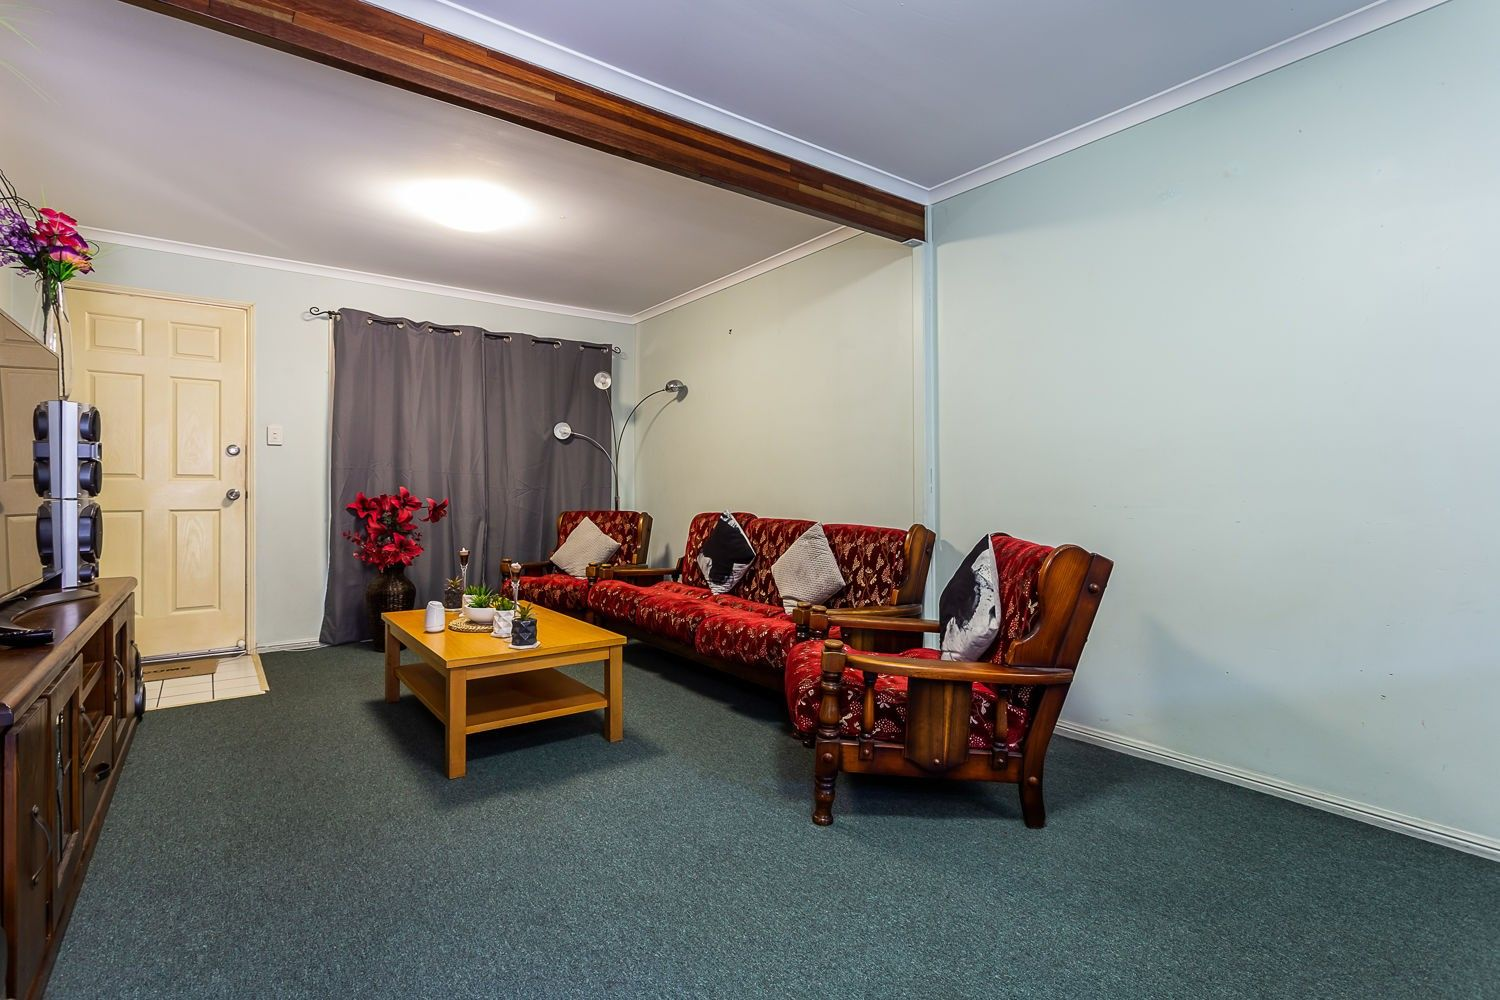 3 Room Flat 3/32 chambers flat road, waterford west qld 4133 | domain